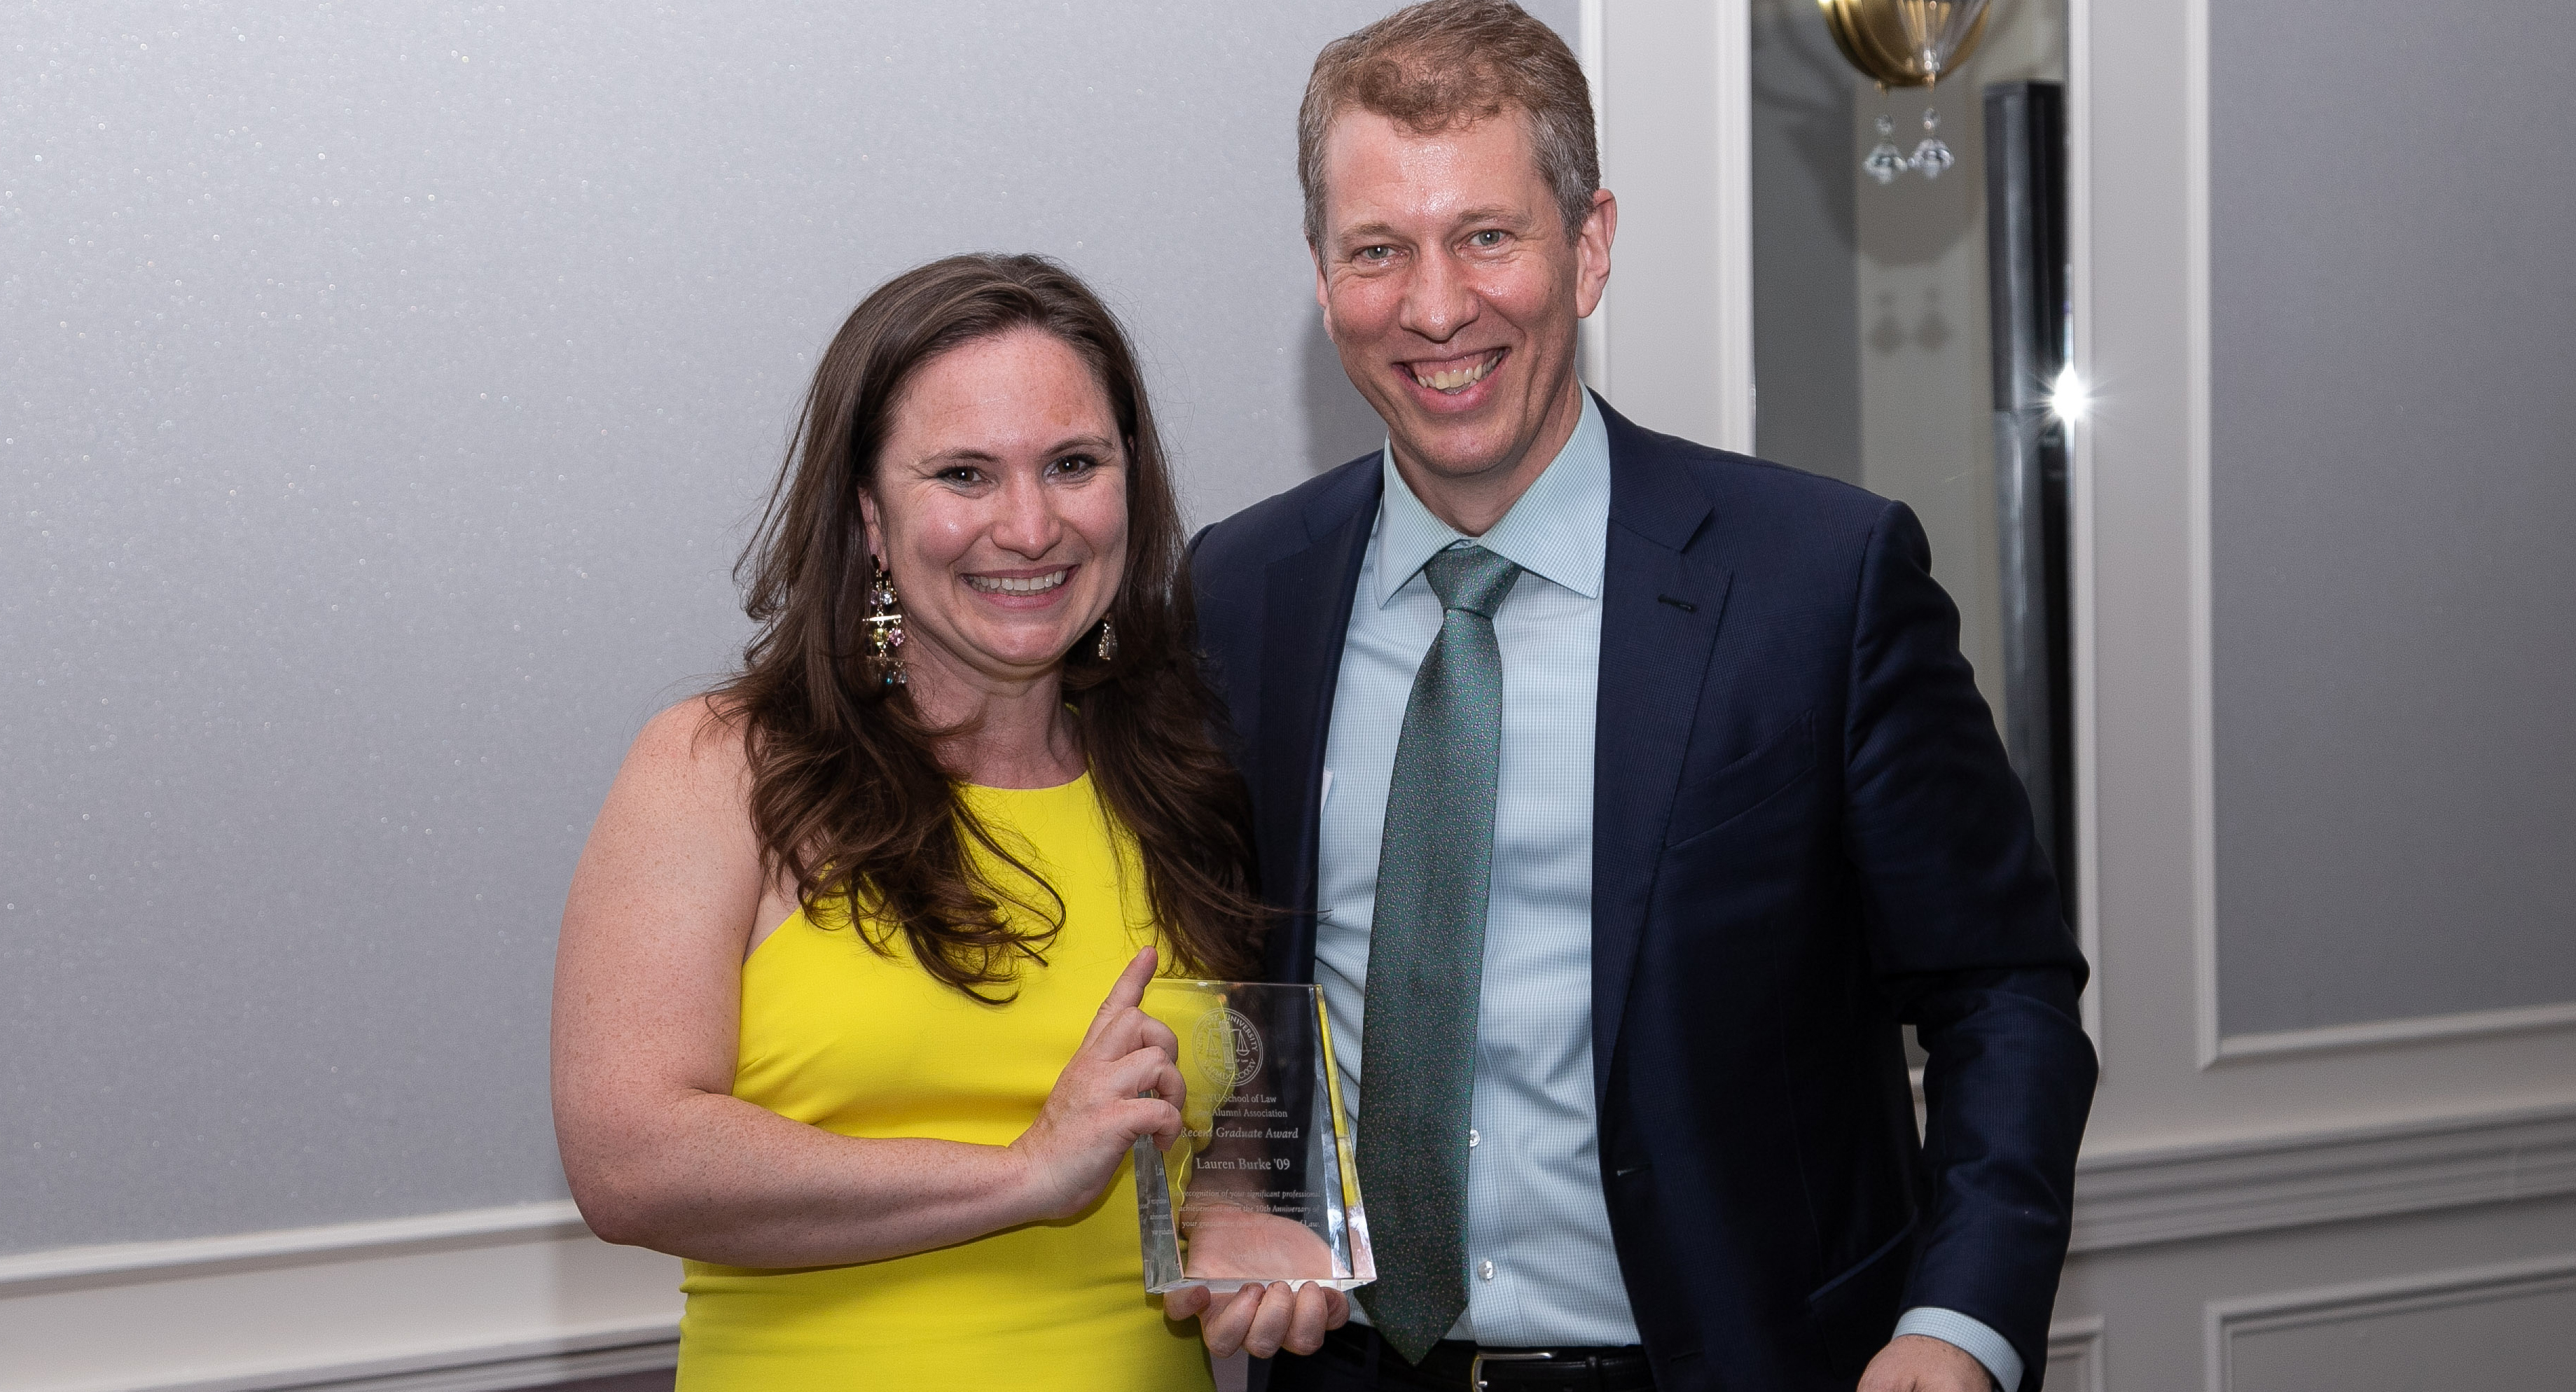 Lauren Burke receiving an award from Dean Trevor Morrison at Reunion 2019